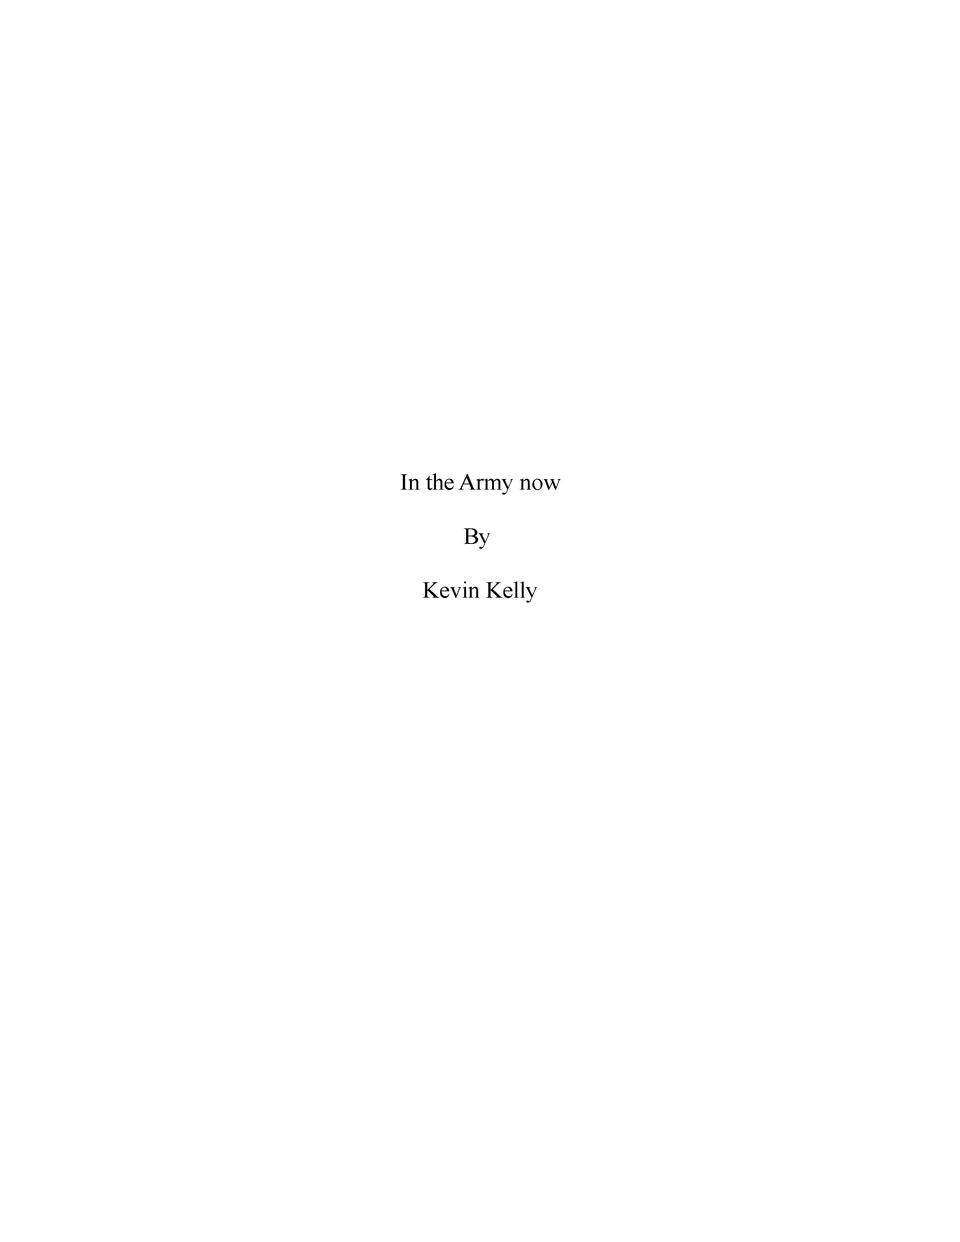 In the Army now By Kevin Kelly